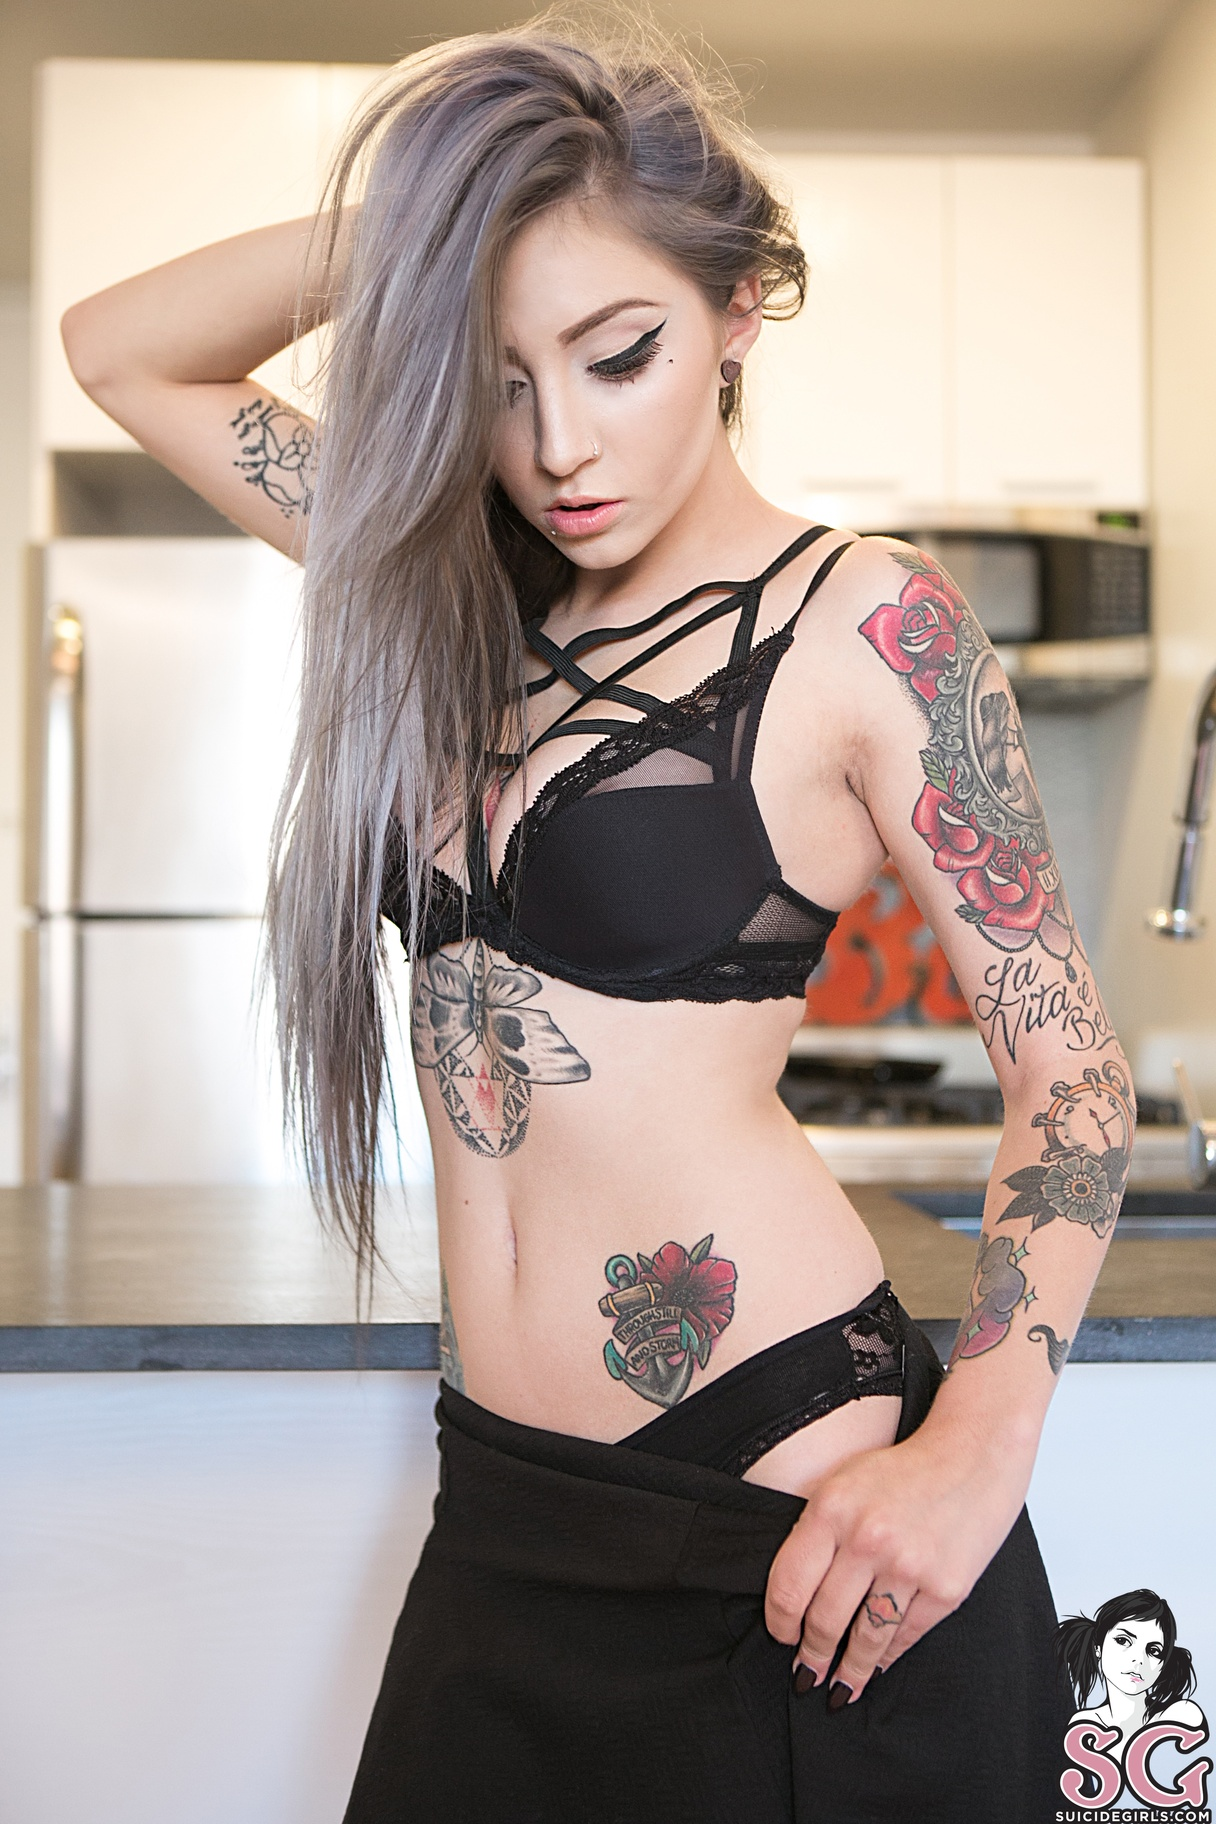 Ivory Suicide by Brooklyn